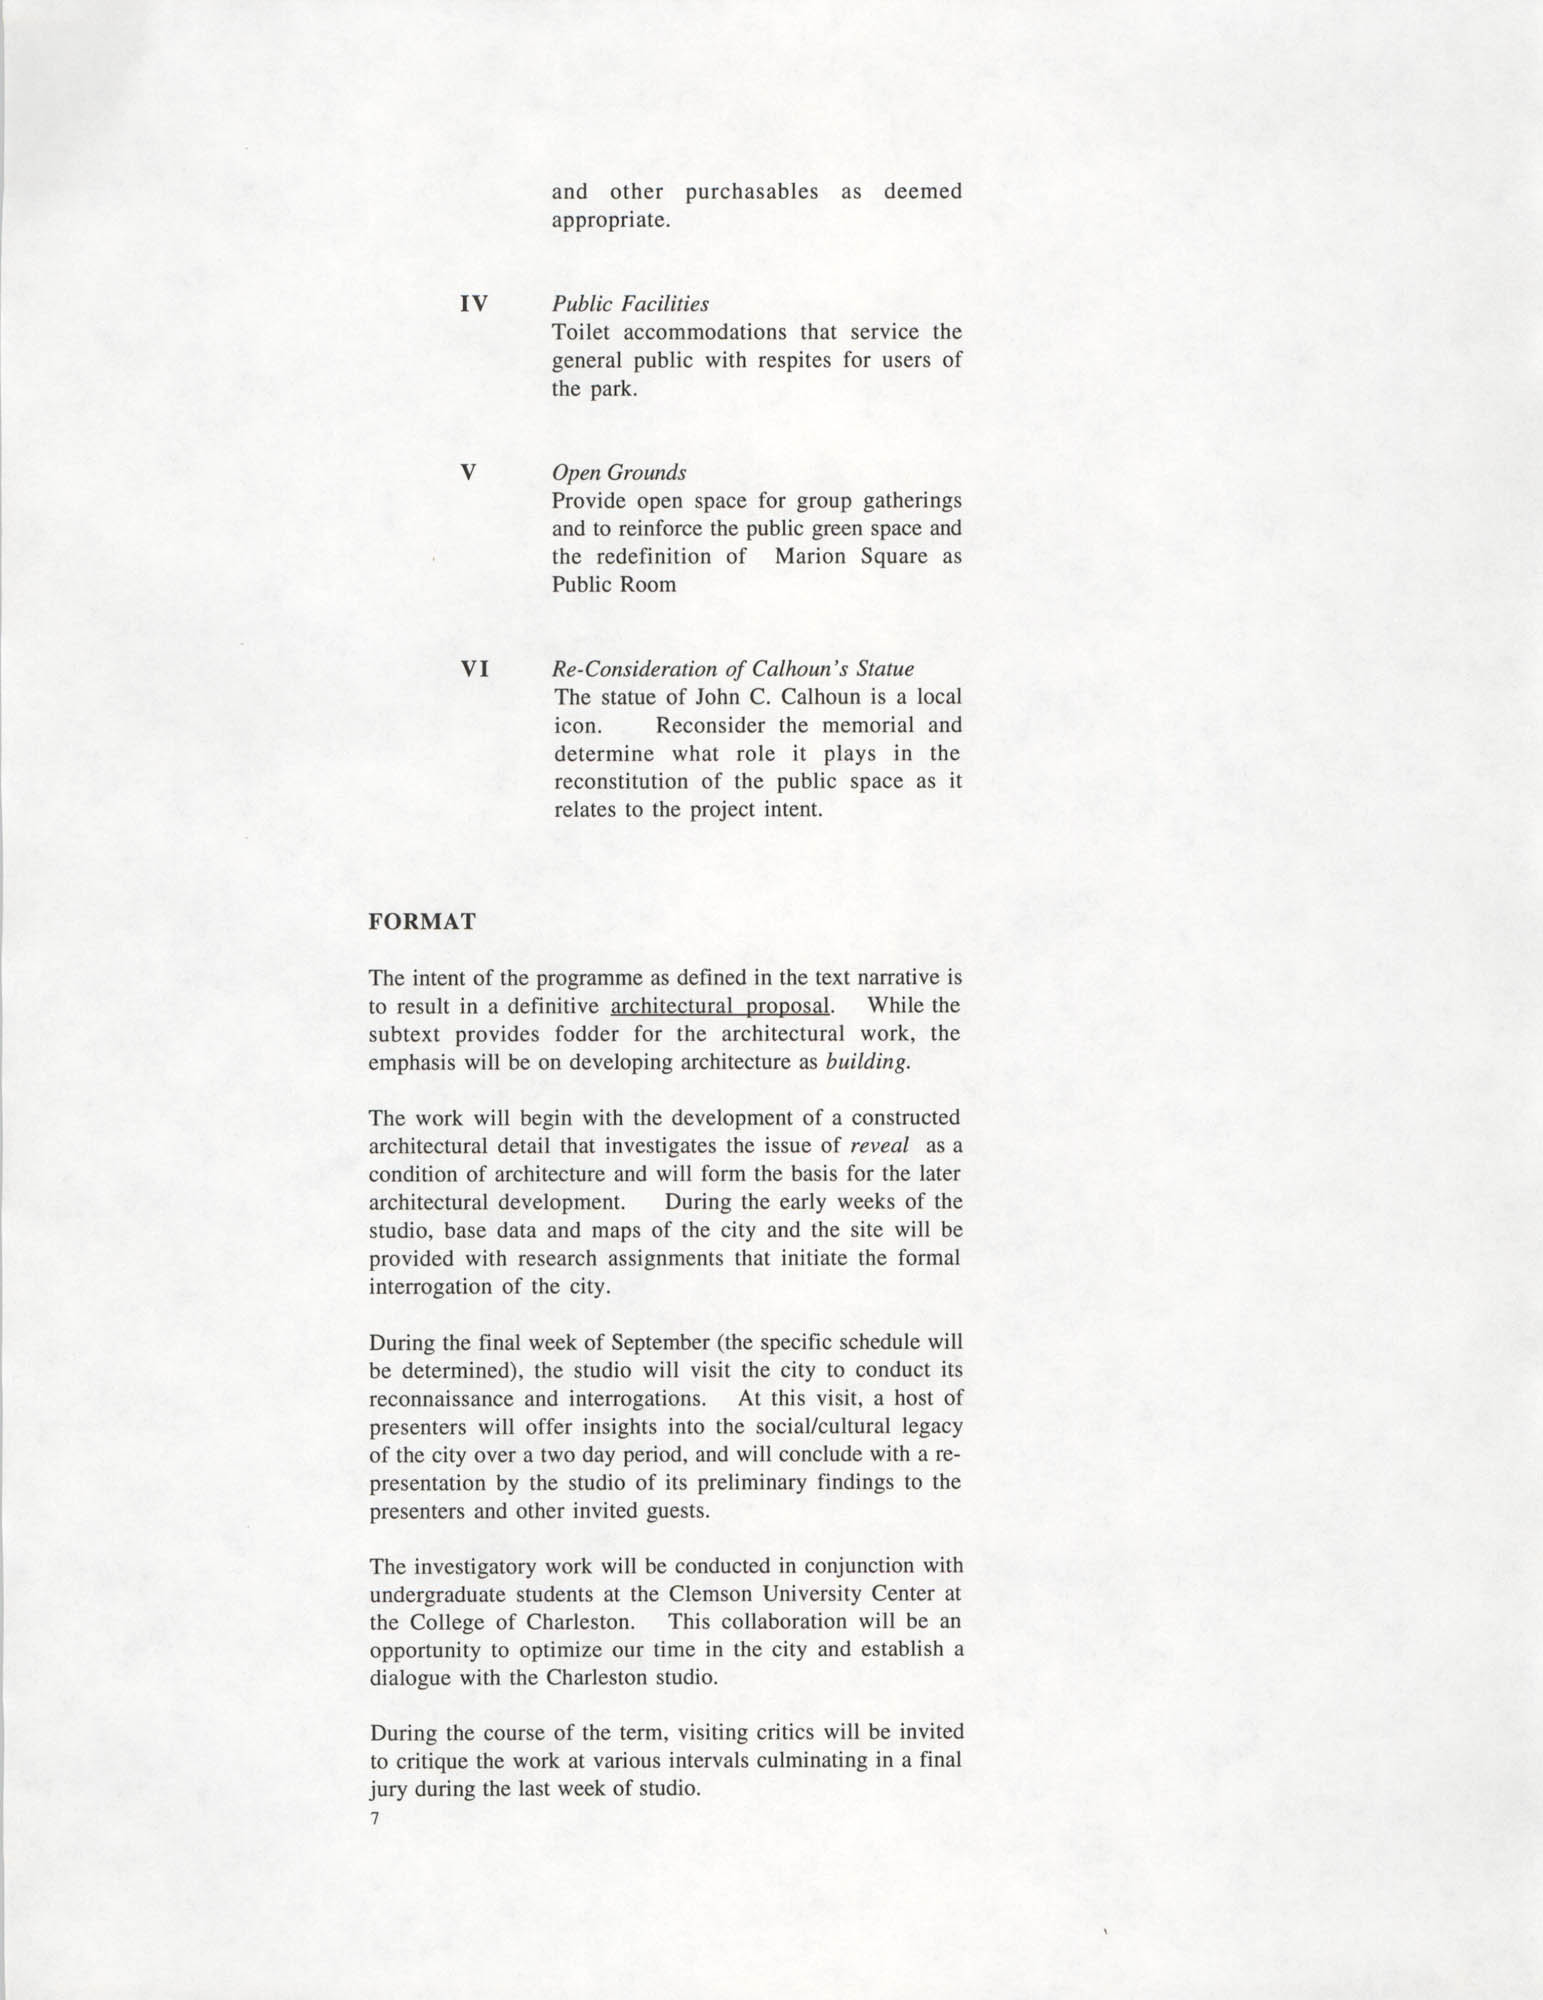 Academic Project Statement, Page 7